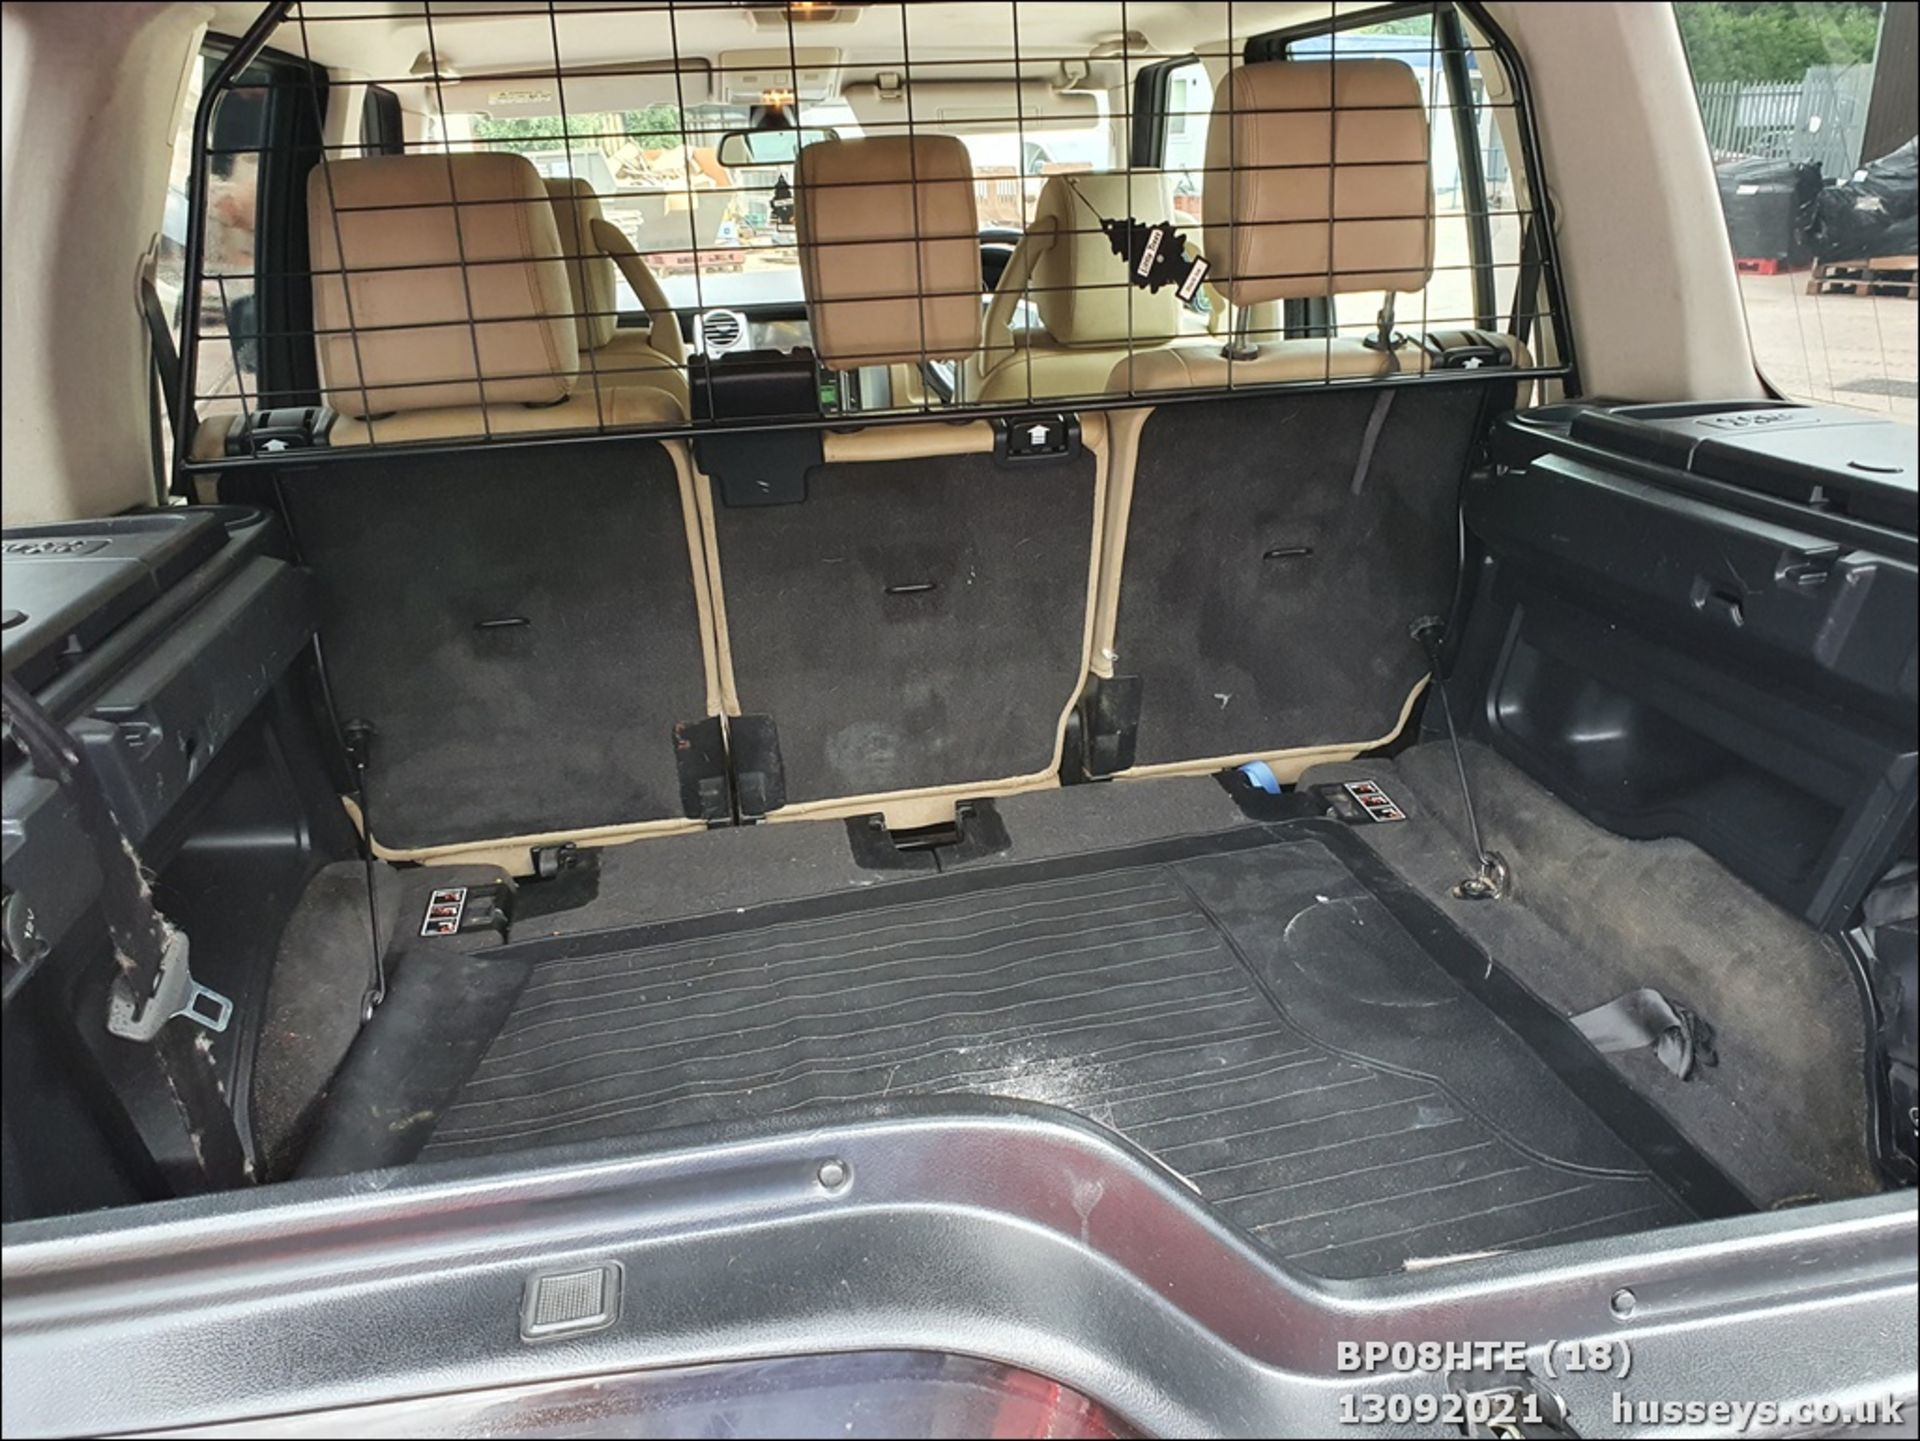 08/08 LAND ROVER DISCOVERY TDV6 SE A - 2720cc 5dr Estate (Brown, 190k) - Image 18 of 18